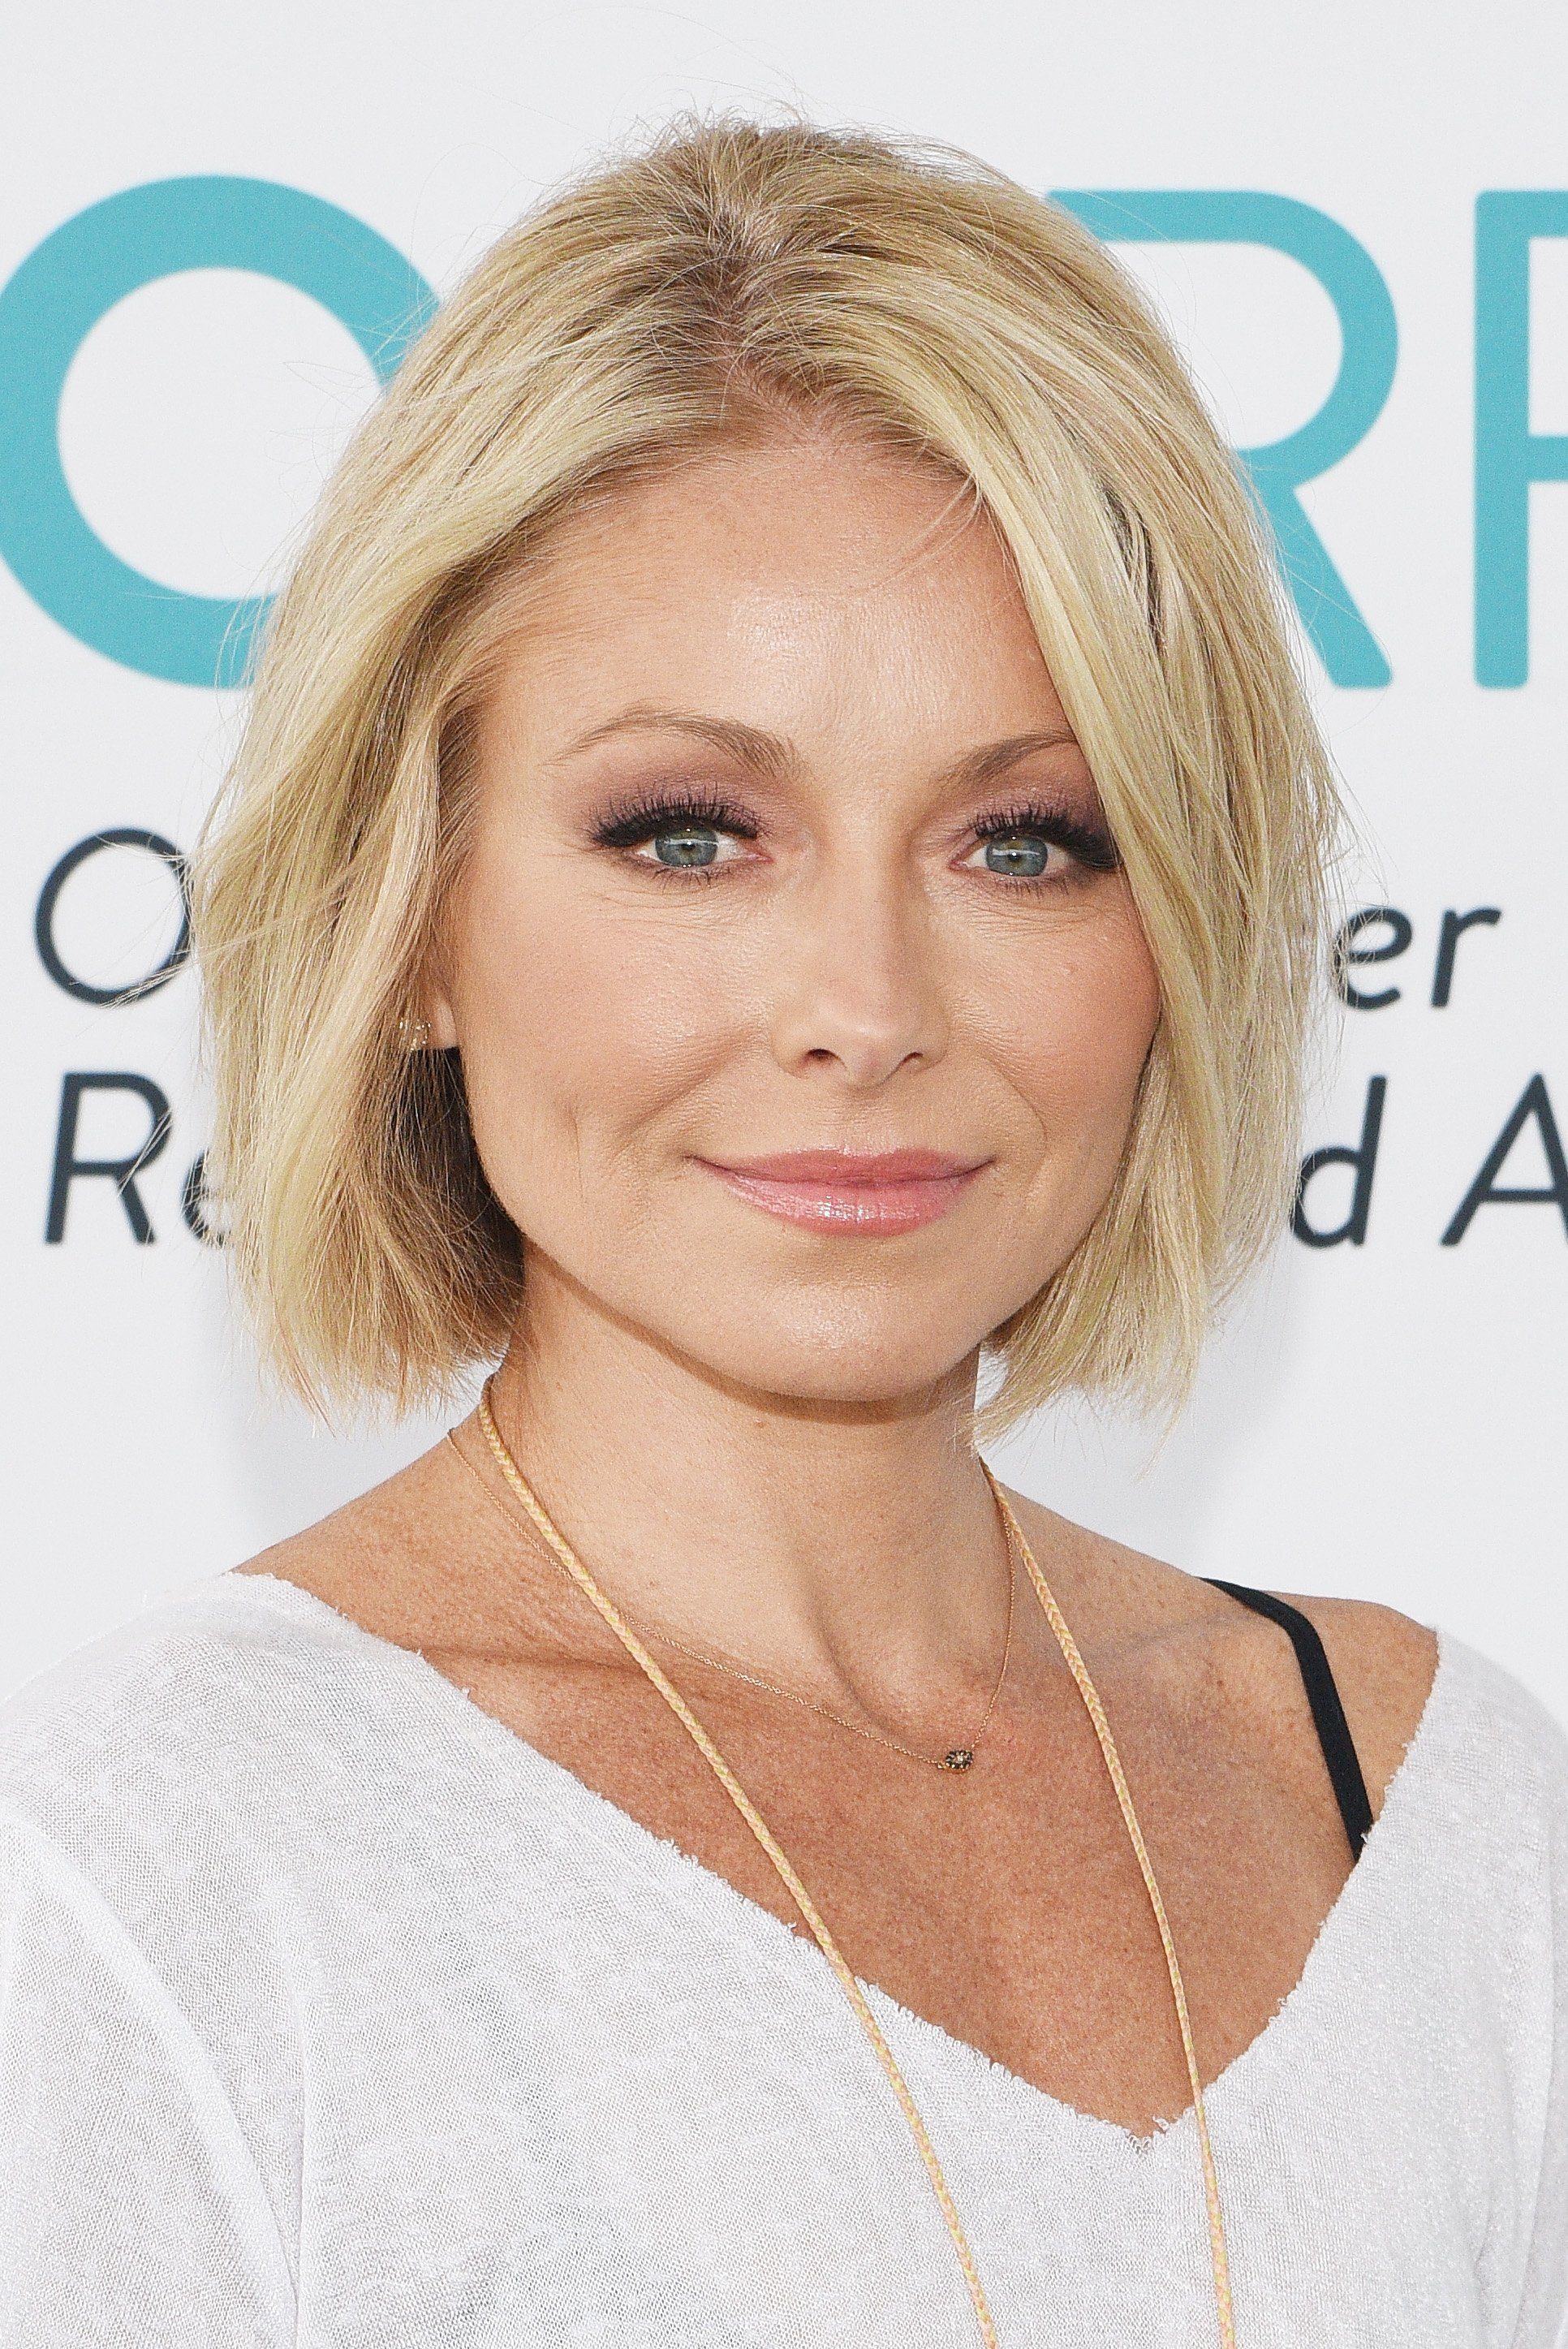 Kelly Ripa at OCRFA's 20th Annual Super Saturday to Benefit Ovarian Cancer in Watermill, New York | Photo: Getty Images